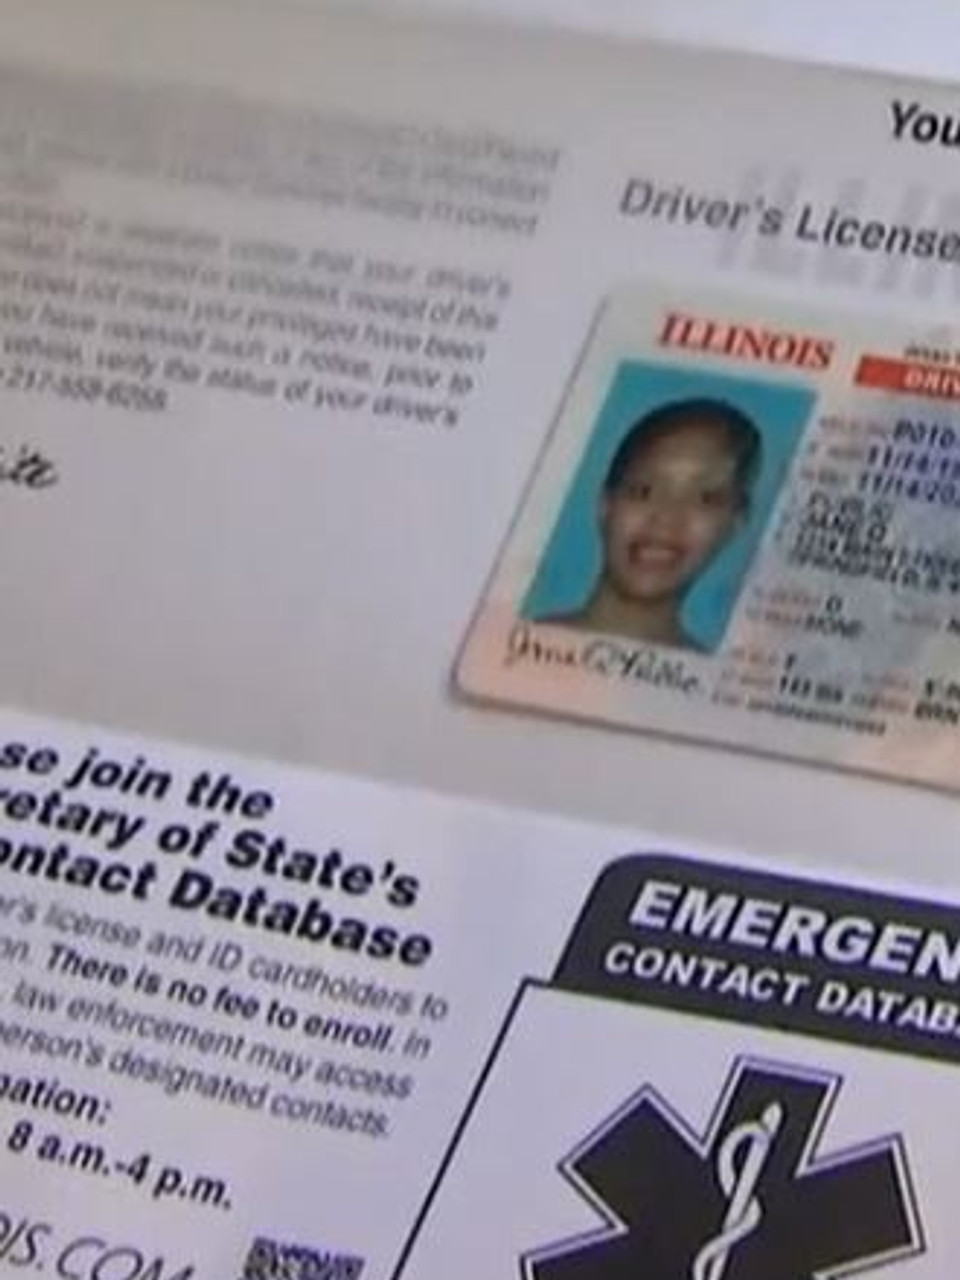 Illinois seniors get extension on drivers license renewals | WICS